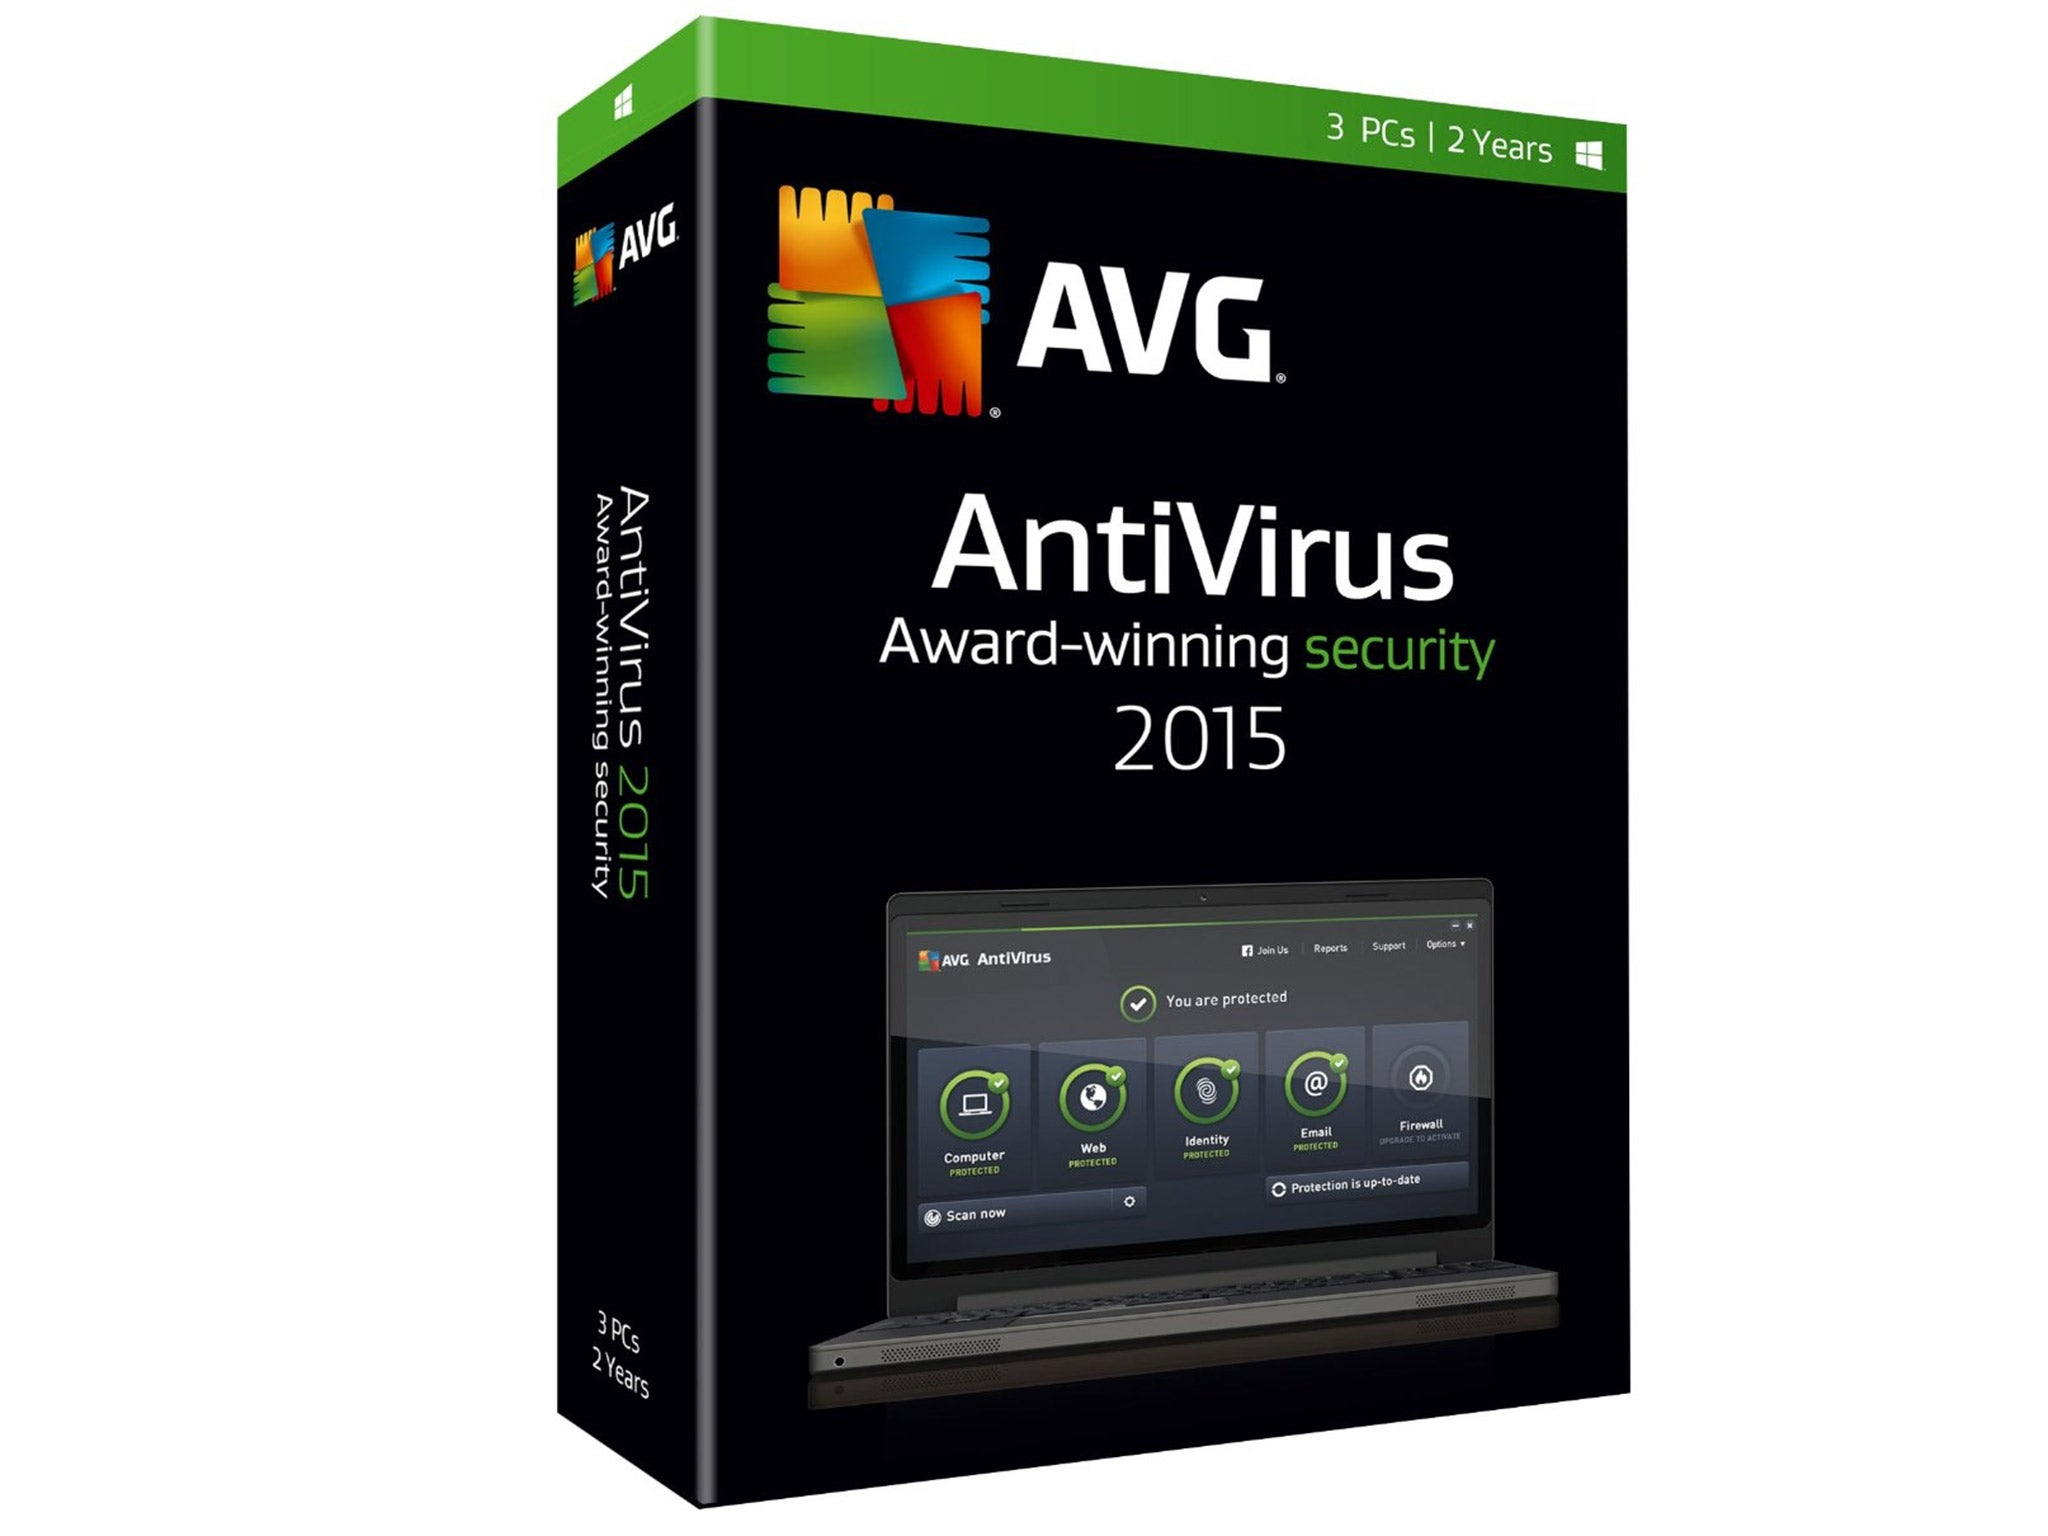 Lets try to choose an antivirus for the tablet